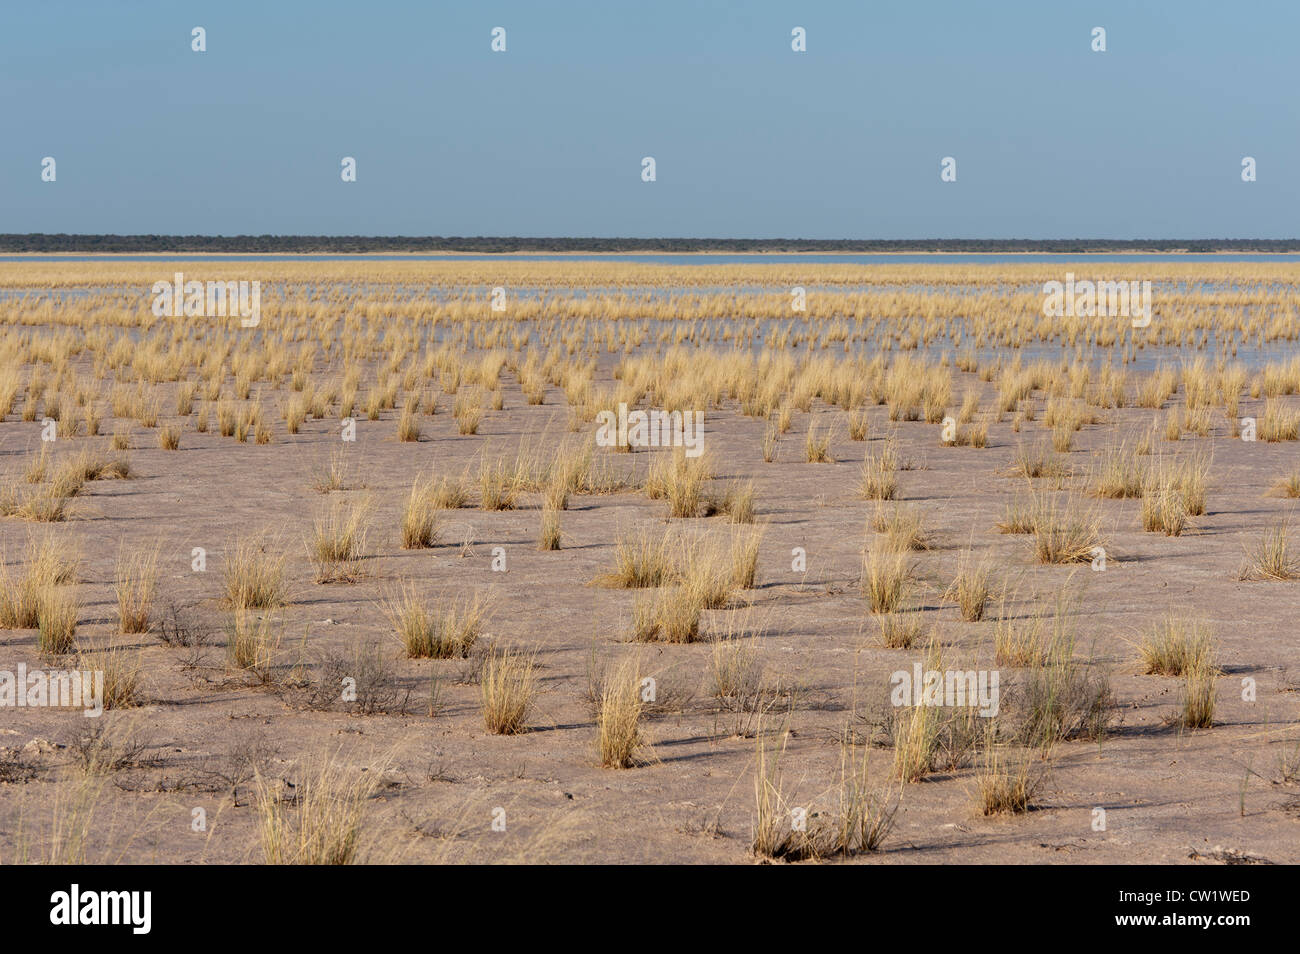 Fischer's Pan after rainfall, Etosha National Park, Namibia, Africa - Stock Image